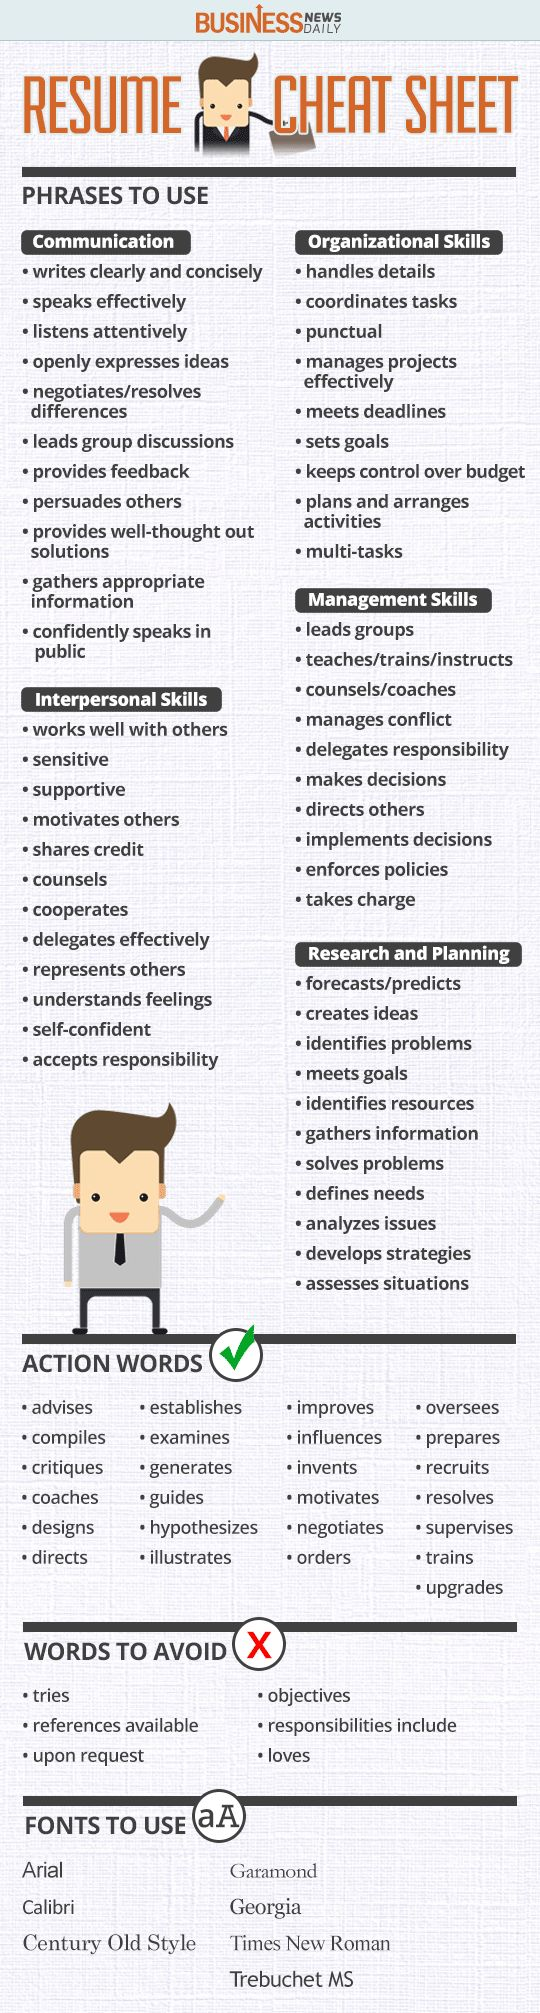 Opposenewapstandardsus  Winsome  Ideas About Resume On Pinterest  Cv Format Resume Cv And  With Exquisite Resume Cheat Sheet Infographic Andrews Almost Done With A Complete Unit On Employment Which With Astonishing Bad Resumes Also Help Writing A Resume In Addition Hr Assistant Resume And Director Of Operations Resume As Well As Build Your Own Resume Additionally Good Resume Format From Pinterestcom With Opposenewapstandardsus  Exquisite  Ideas About Resume On Pinterest  Cv Format Resume Cv And  With Astonishing Resume Cheat Sheet Infographic Andrews Almost Done With A Complete Unit On Employment Which And Winsome Bad Resumes Also Help Writing A Resume In Addition Hr Assistant Resume From Pinterestcom